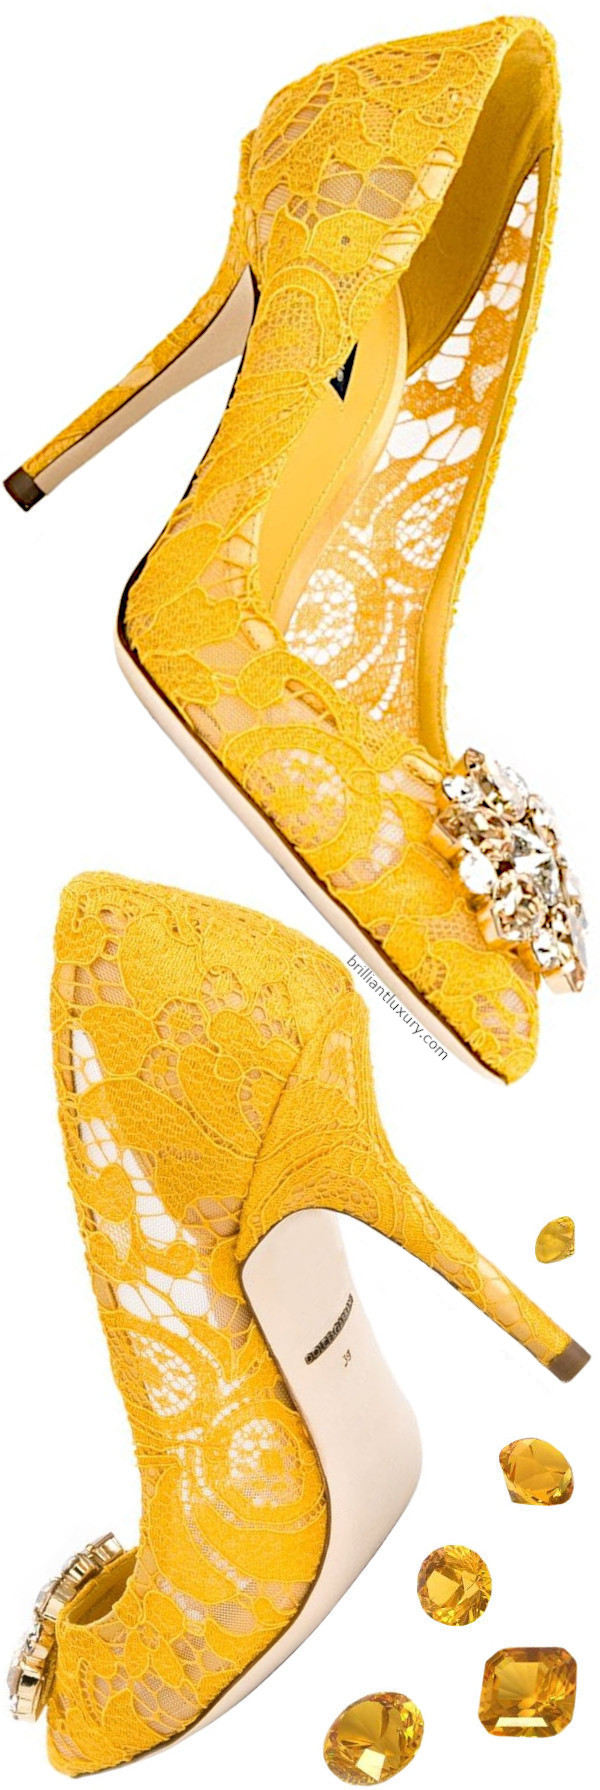 Dolce and Gabbana Belluci Bejeweled Lace Pumps in Pantone Color Saffron